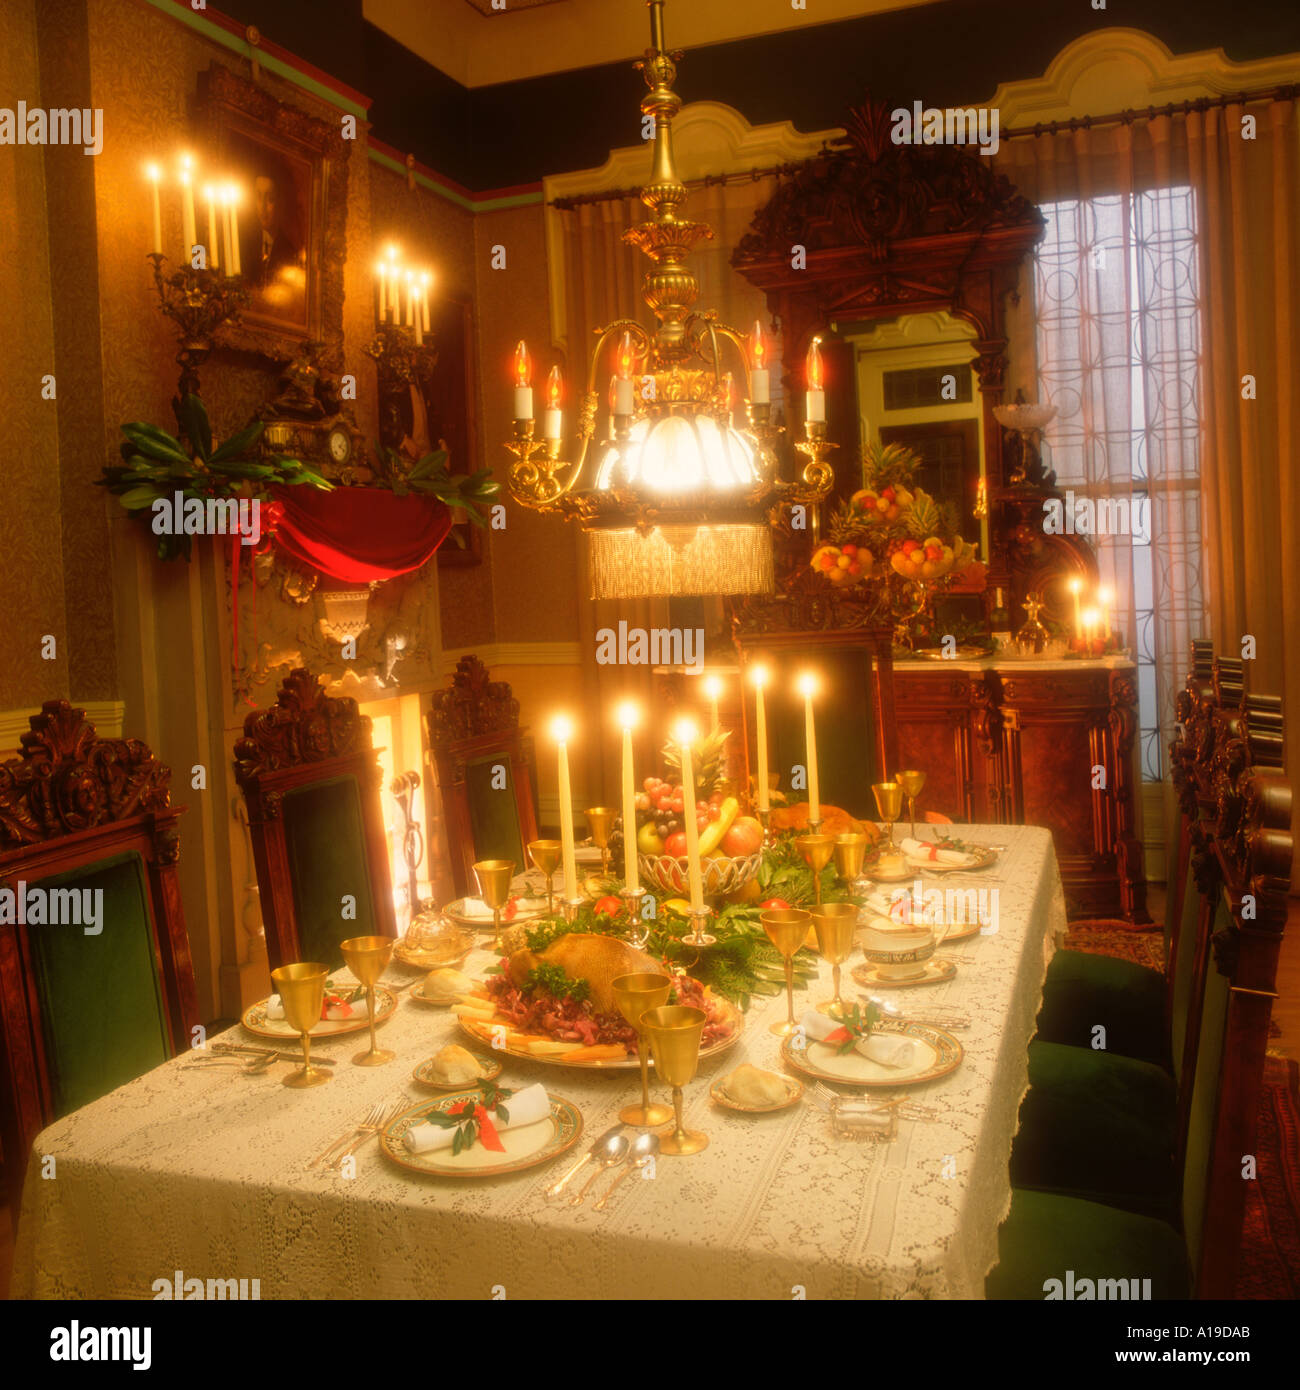 Victorian Christmas Dinner Table Setting Stock Photo 105899 Alamy